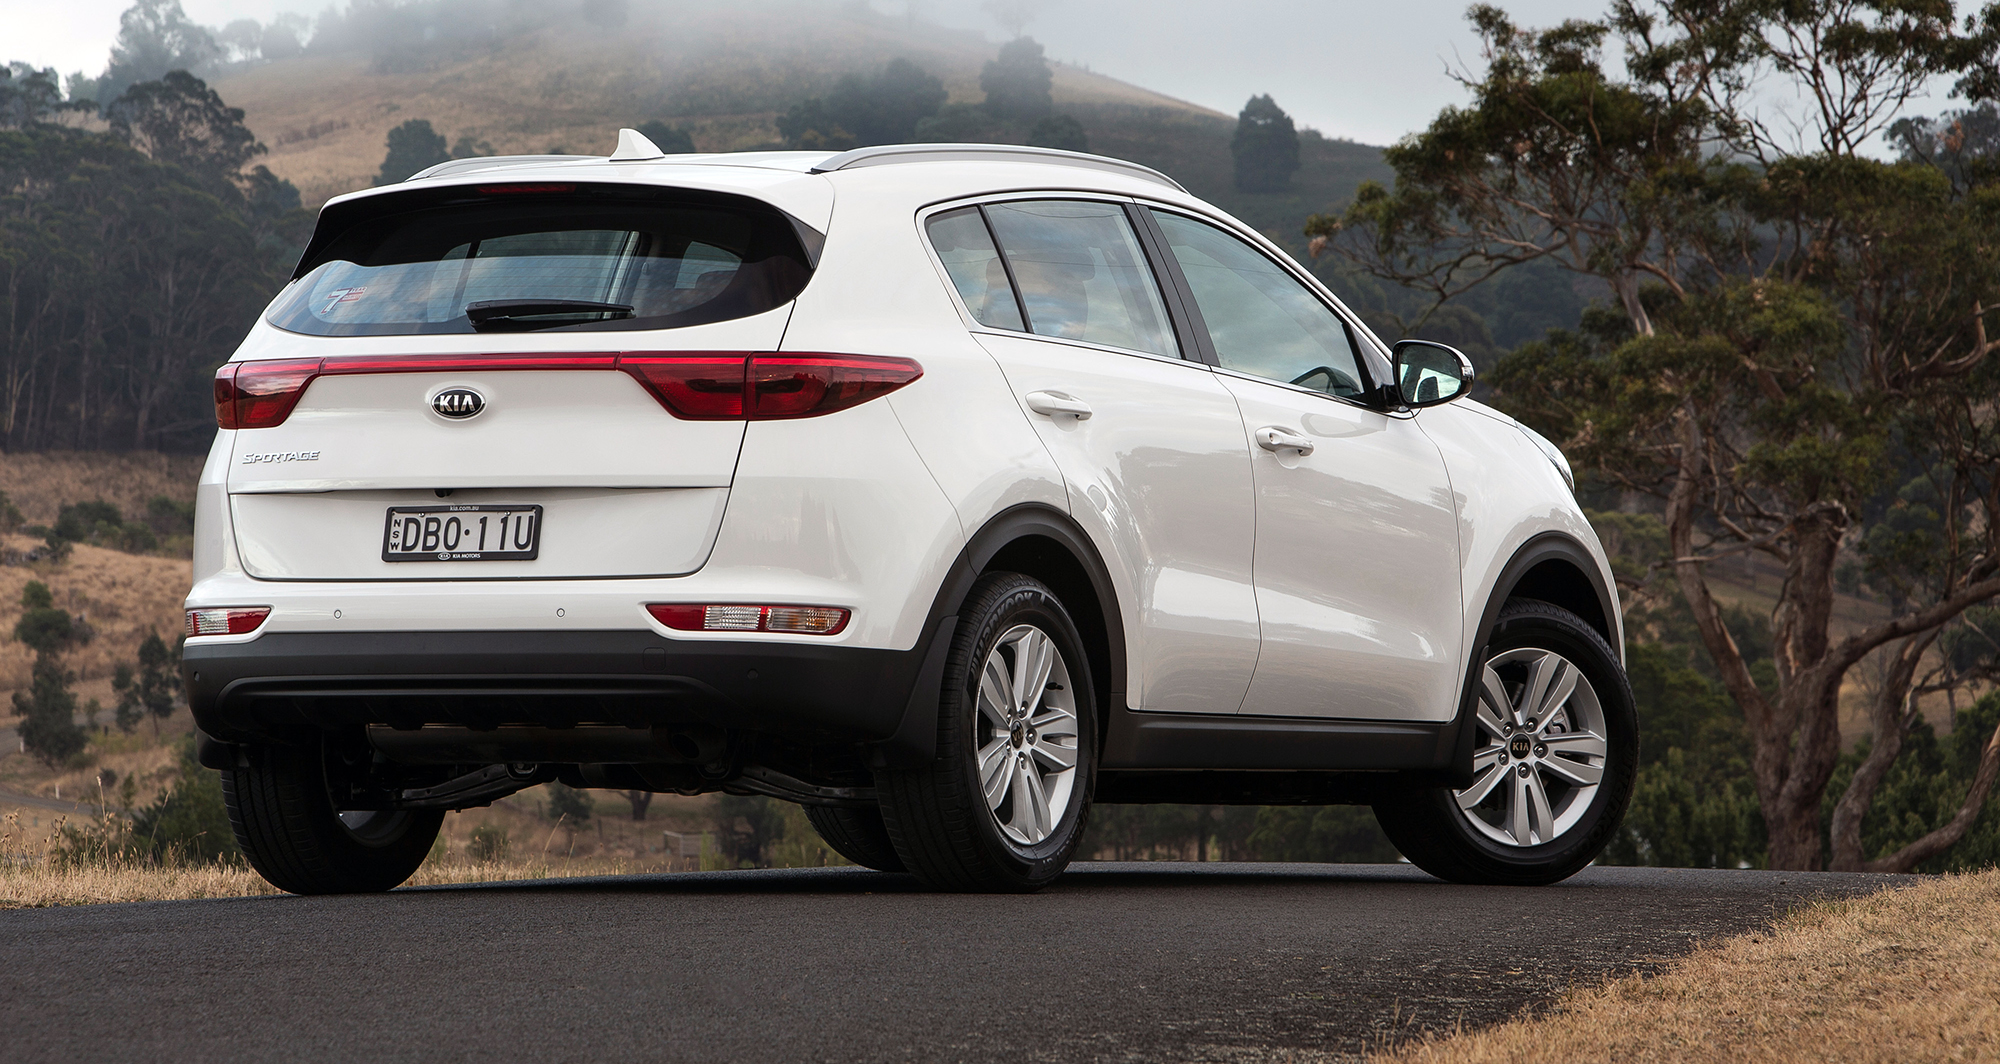 2016 kia sportage pricing and specifications photos 1 of 41